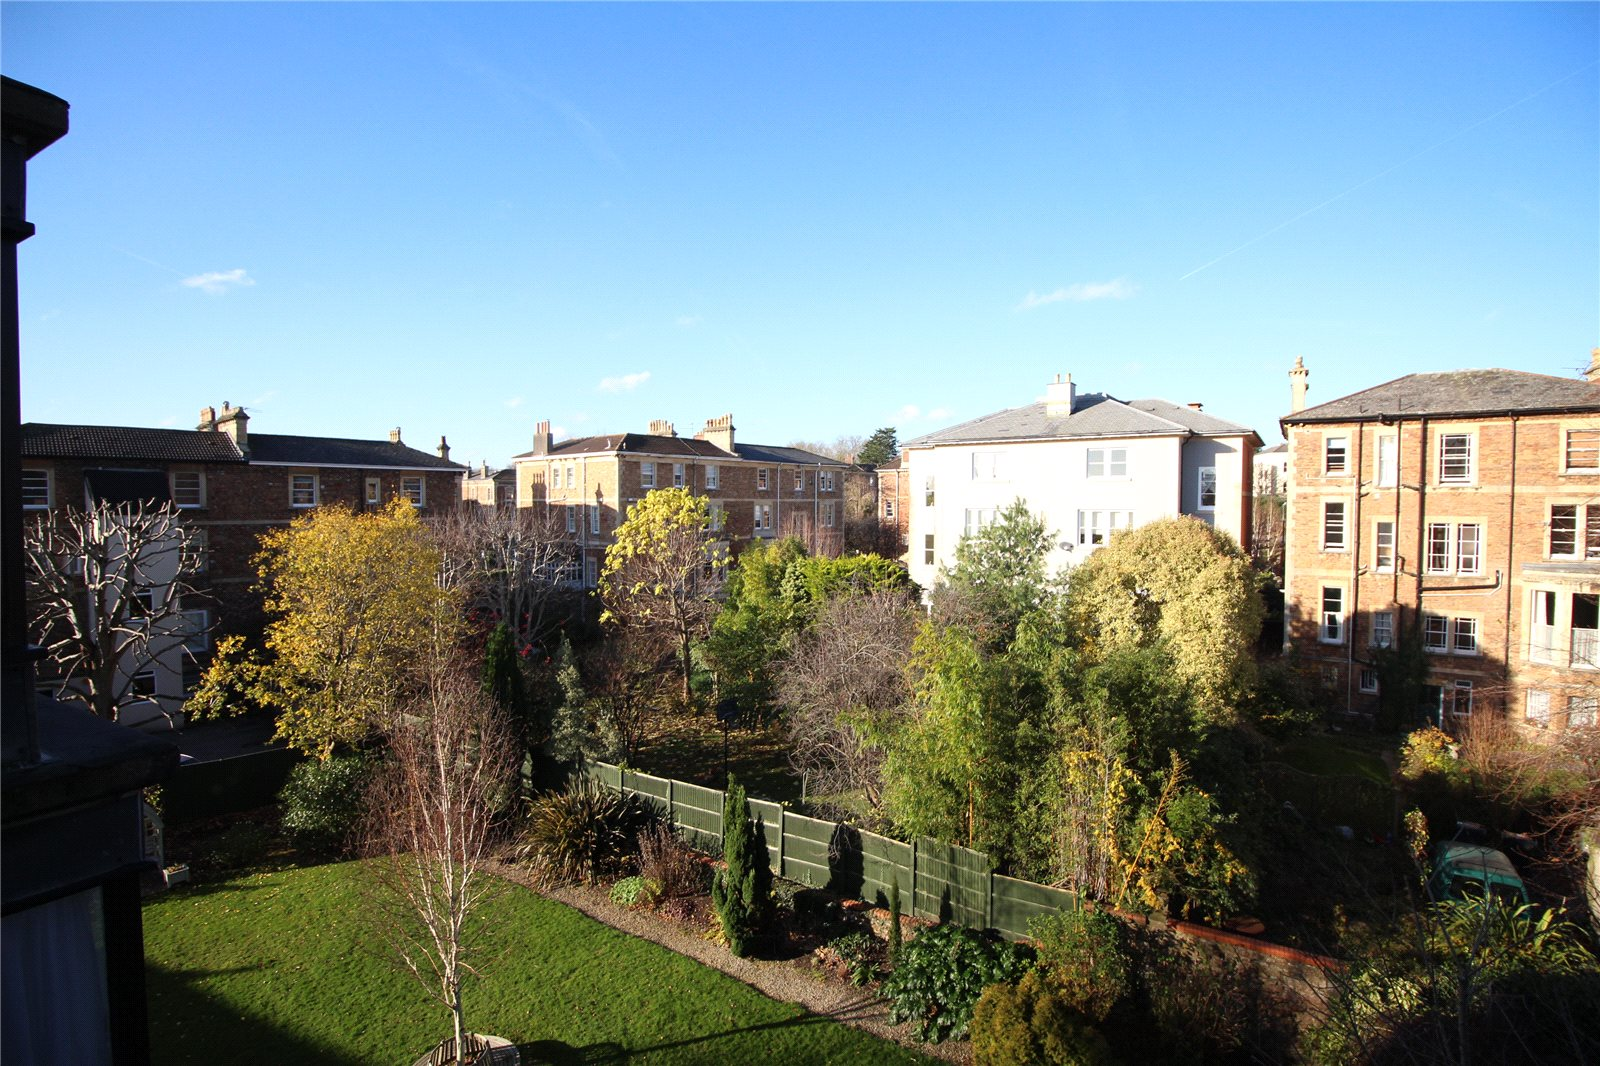 Cj Hole Clifton 2 Bedroom Flat For Sale In Shorland House